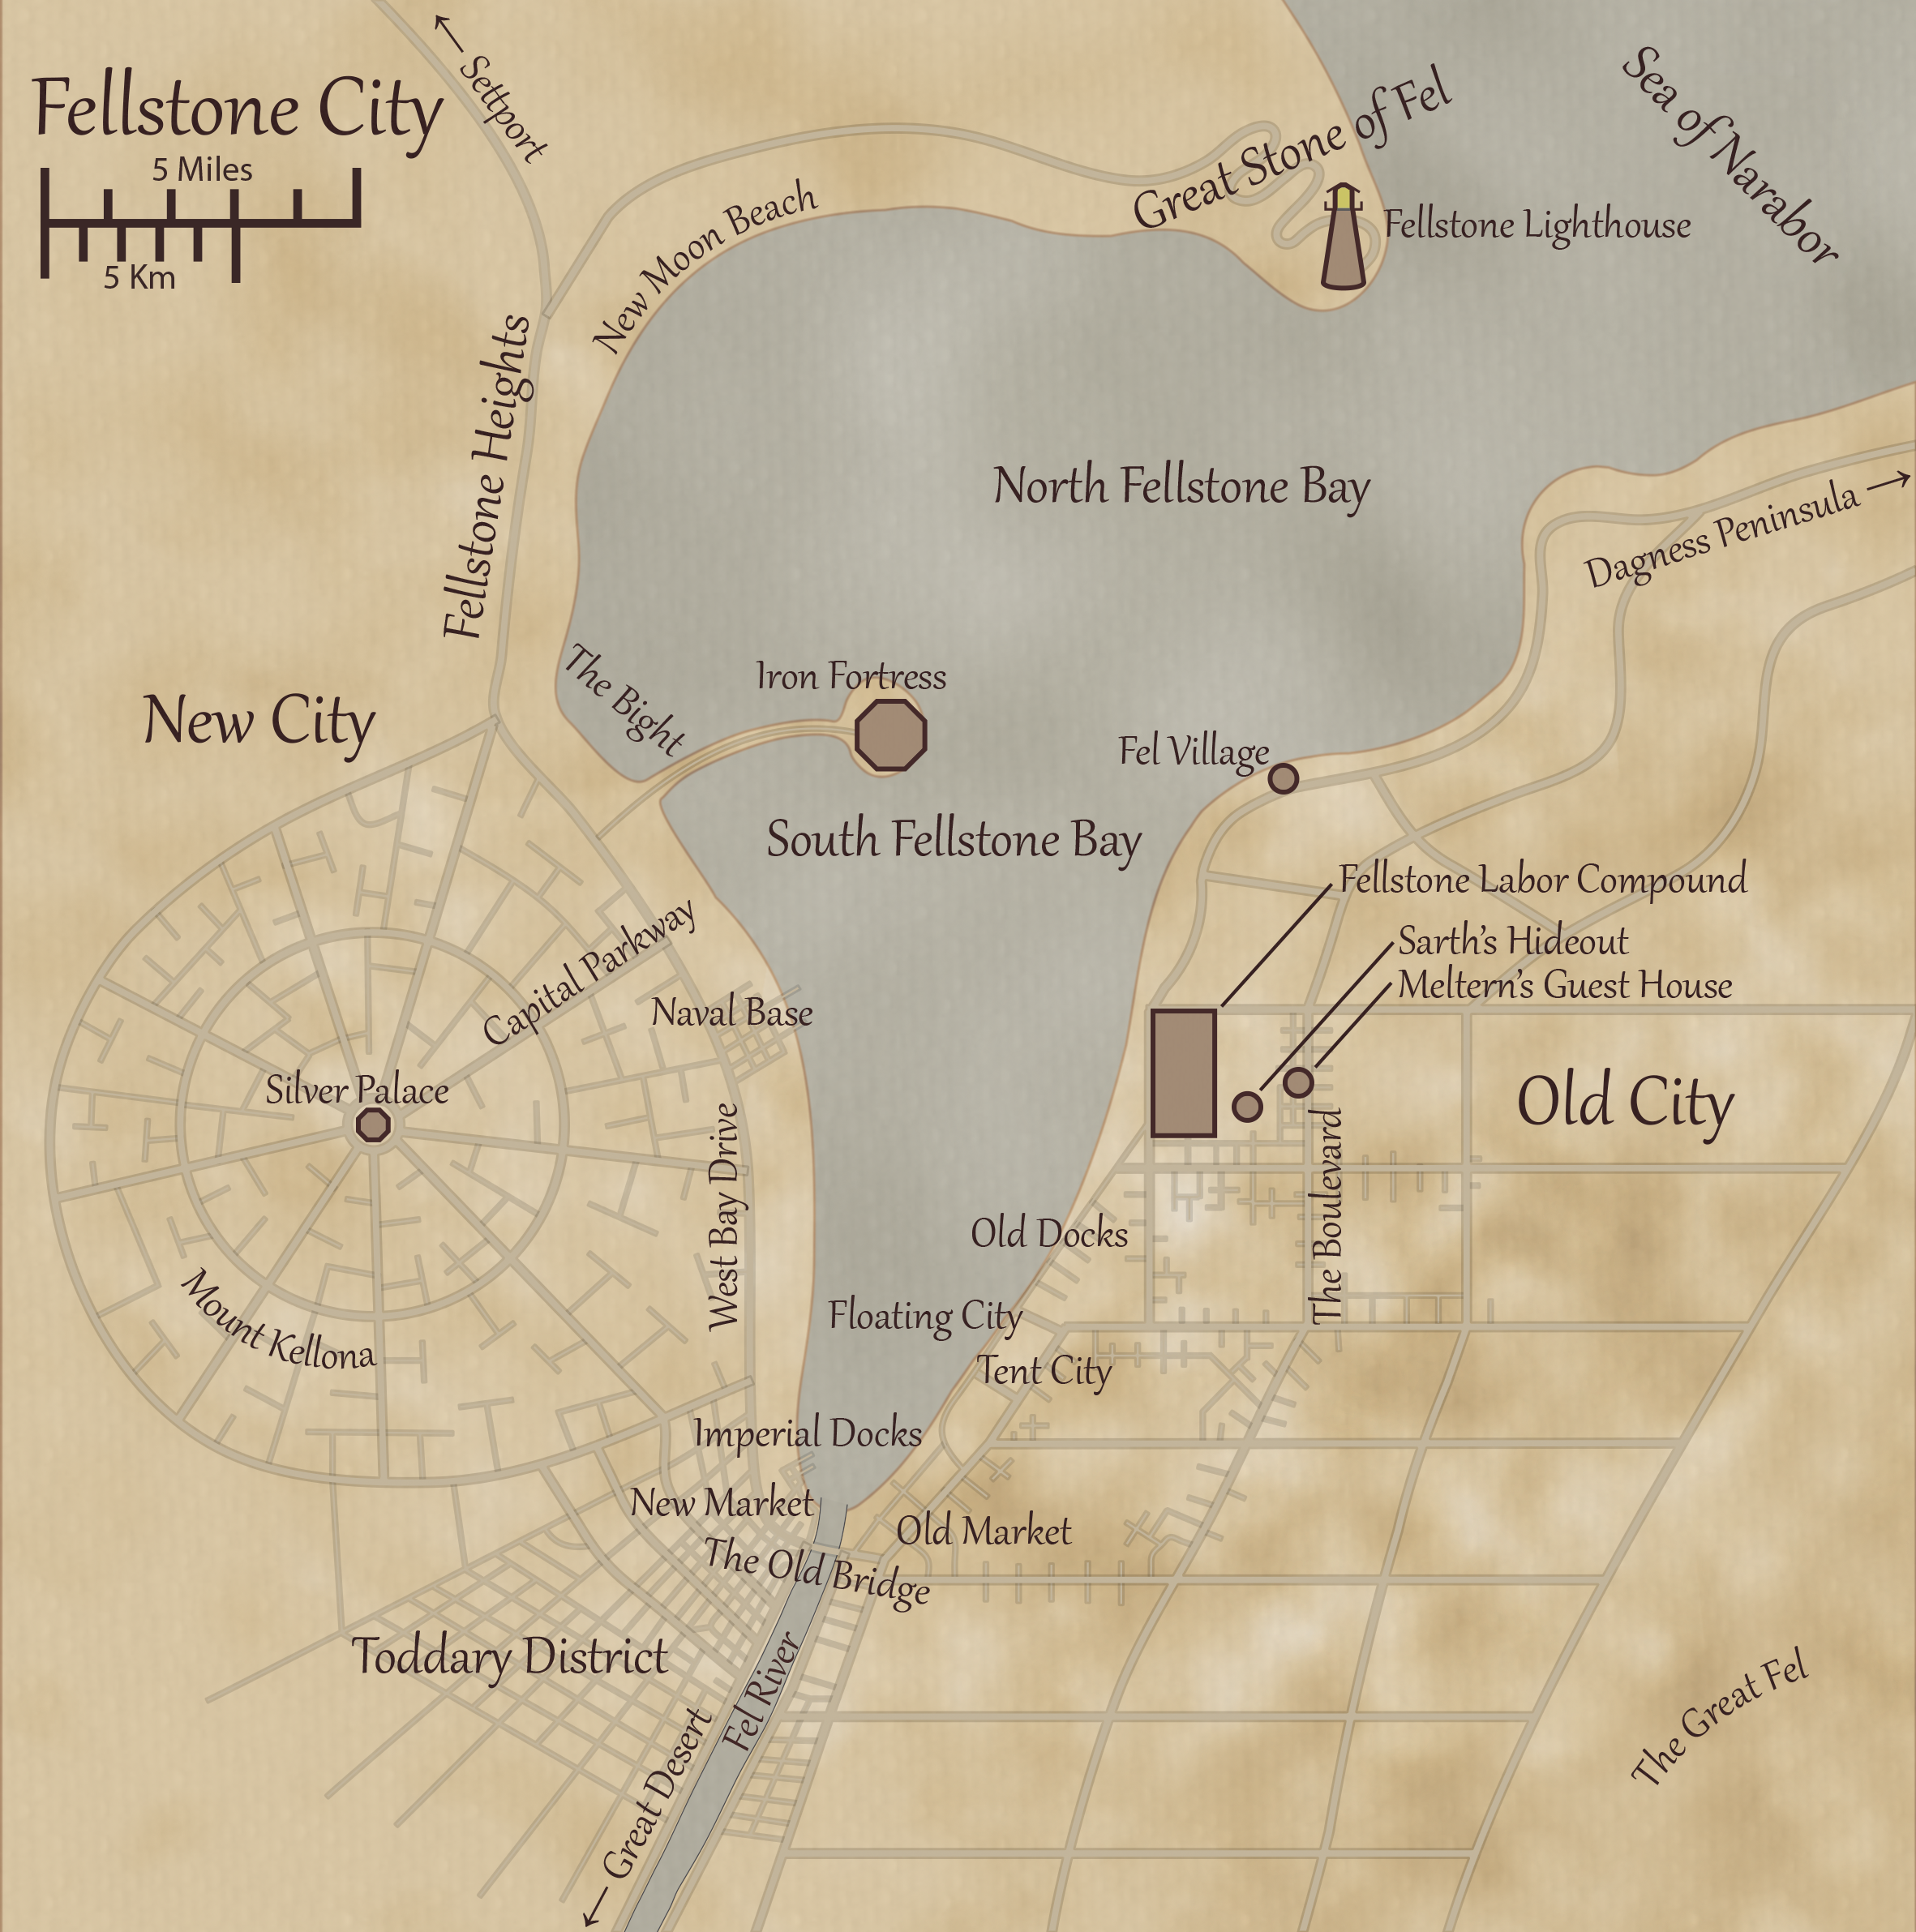 Fellstone City